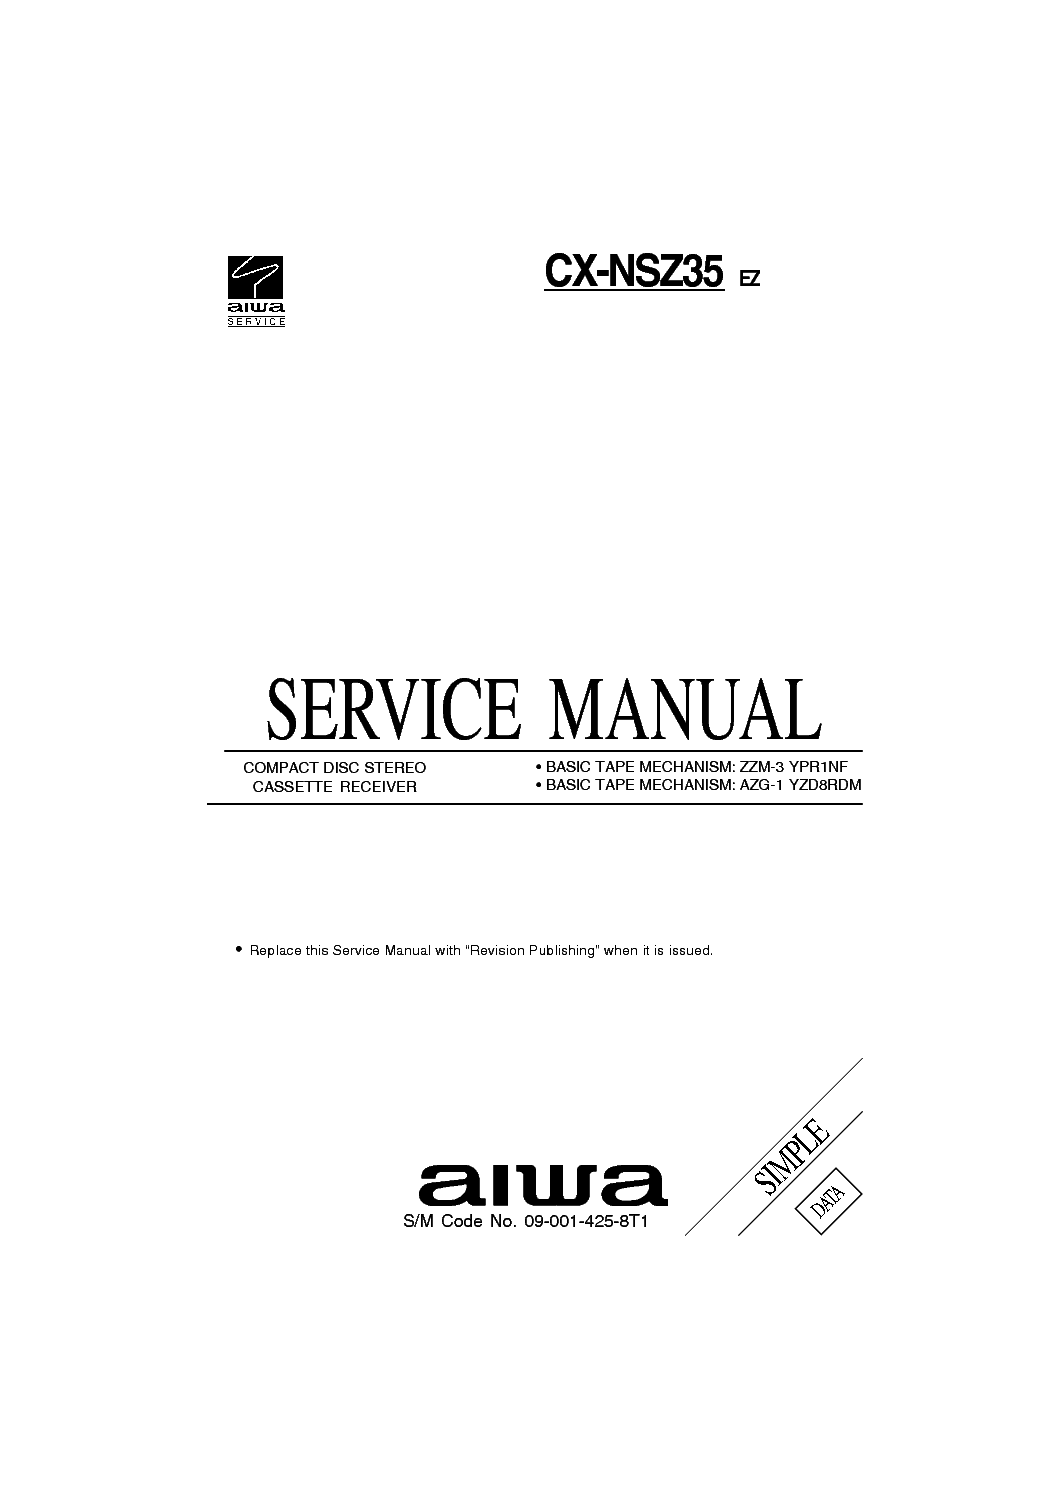 AIWA CX-NSZ35 Service Manual download, schematics, eeprom